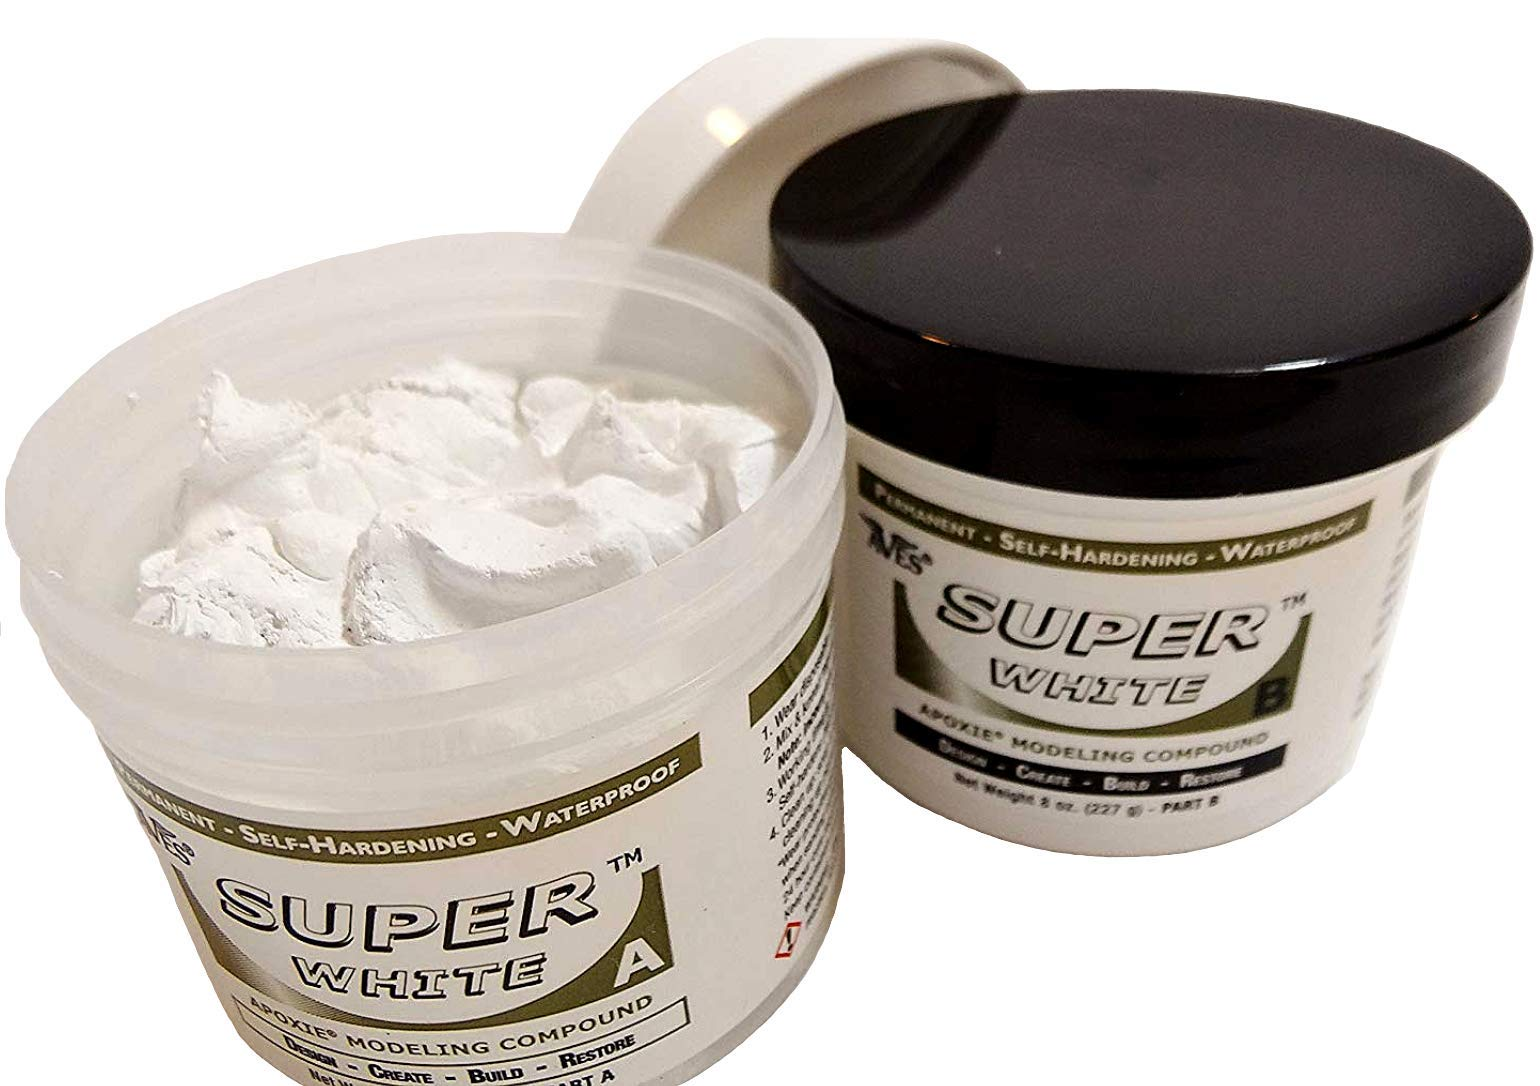 Apoxie Sculpt 1 lb. Super White, 2 Part Modeling Compound (A & B)